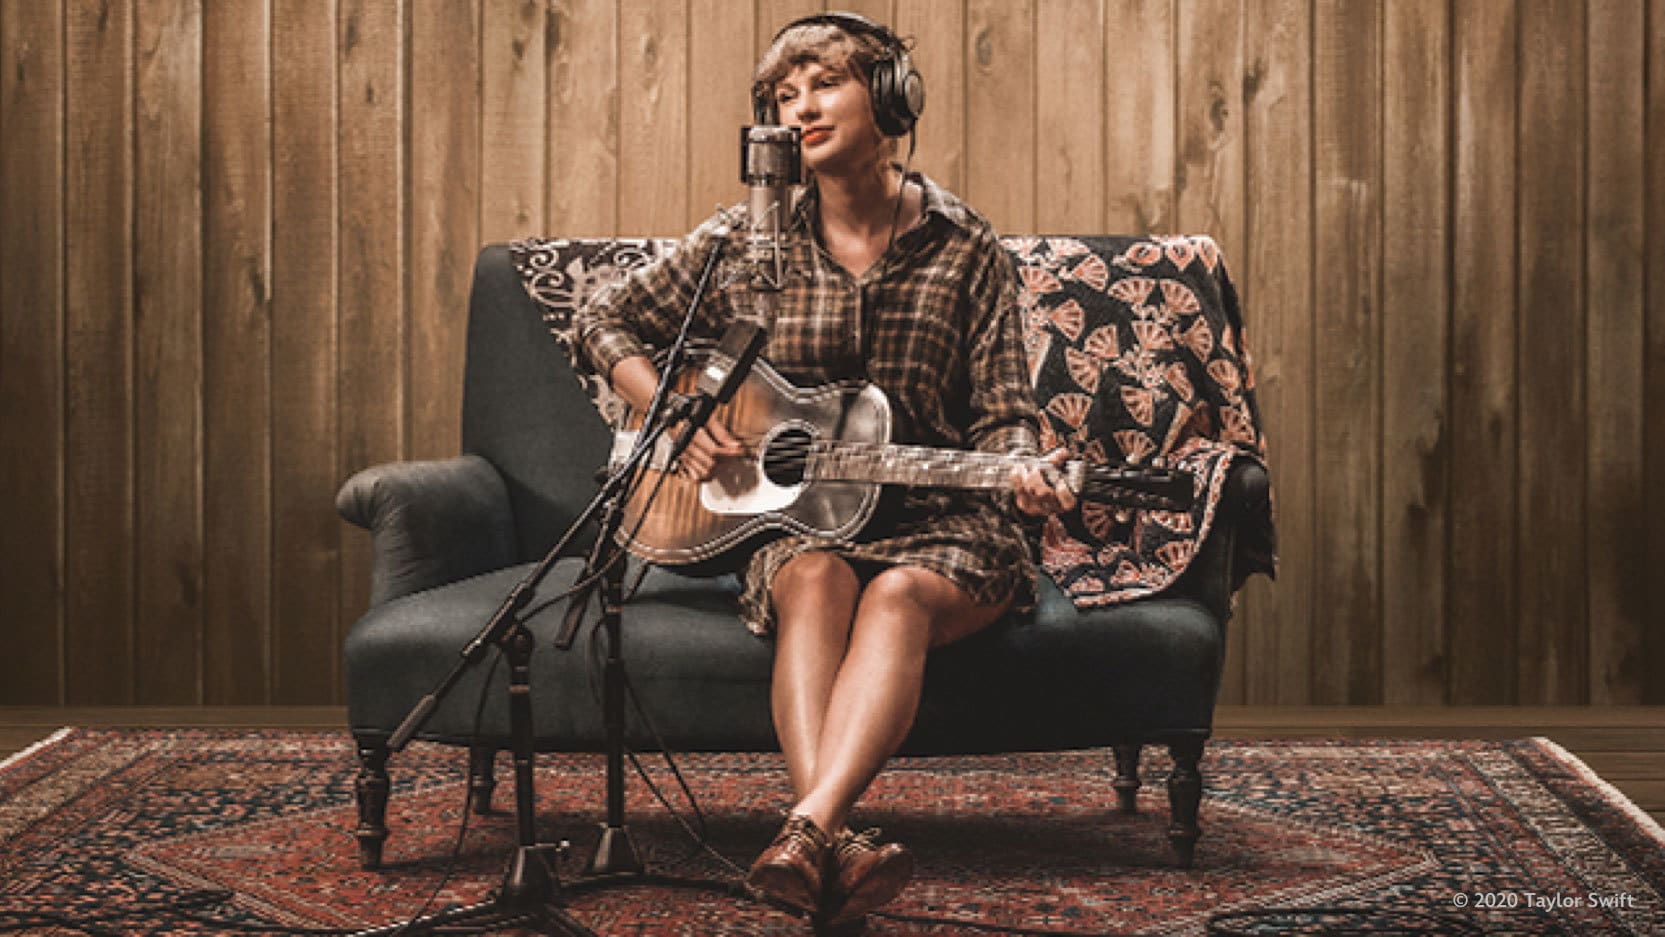 """Taylor Swift releases full performance of Grammy-nominated """"Exile"""" Featuring Justin Vernon (Bon Iver) from """"Folklore: The Long Pond Studio Sessions"""""""